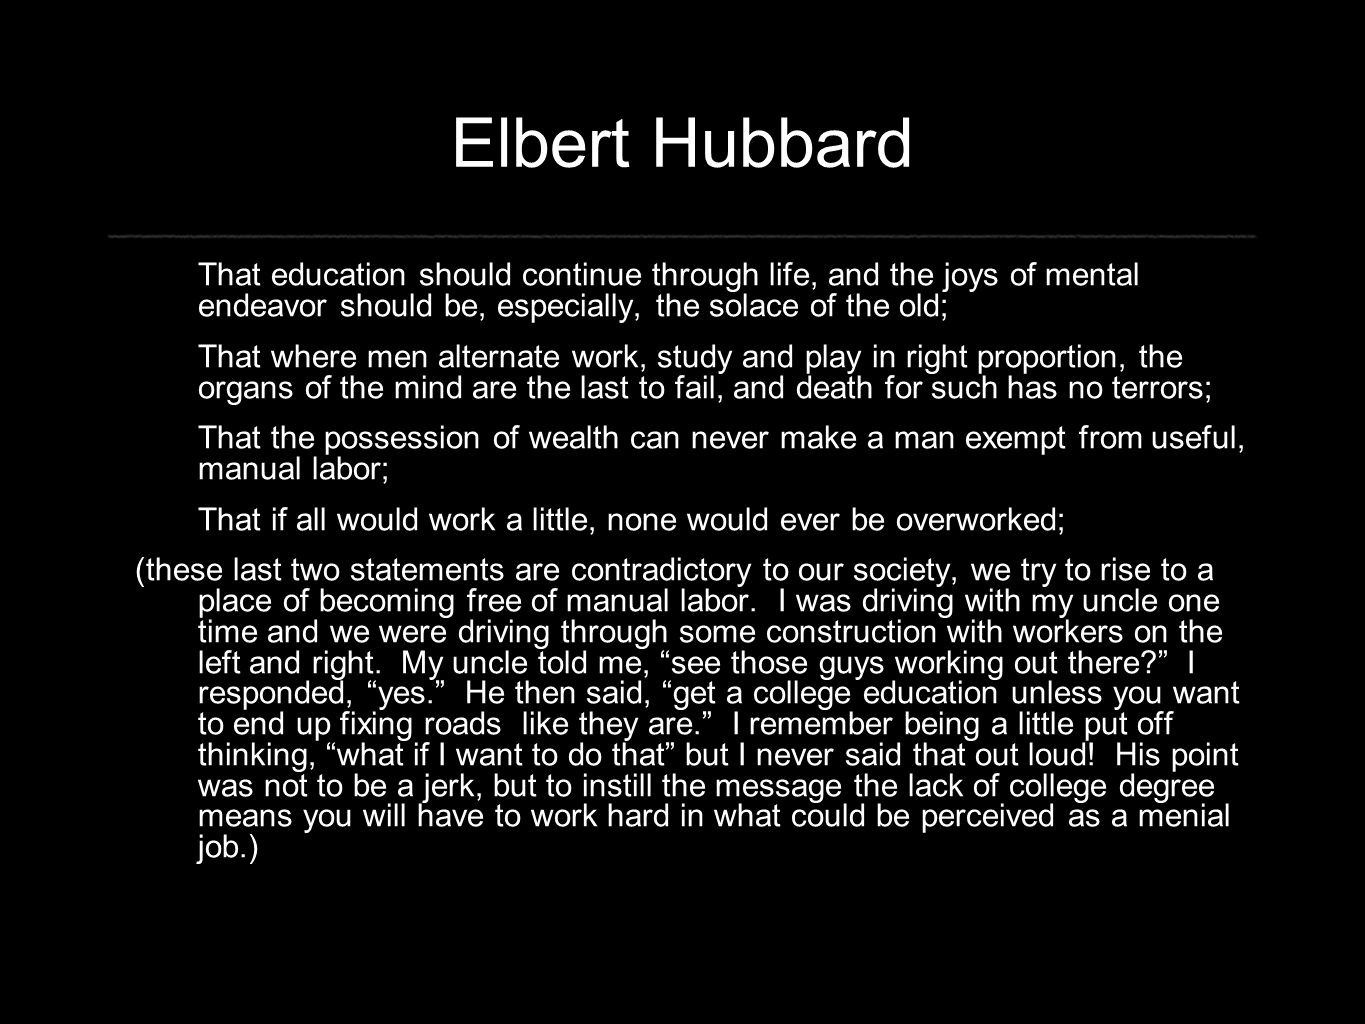 Elbert Hubbard That education should continue through life, and the joys of mental endeavor should be, especially, the solace of the old; That where men alternate work, study and play in right proportion, the organs of the mind are the last to fail, and death for such has no terrors; That the possession of wealth can never make a man exempt from useful, manual labor; That if all would work a little, none would ever be overworked; (these last two statements are contradictory to our society, we try to rise to a place of becoming free of manual labor.